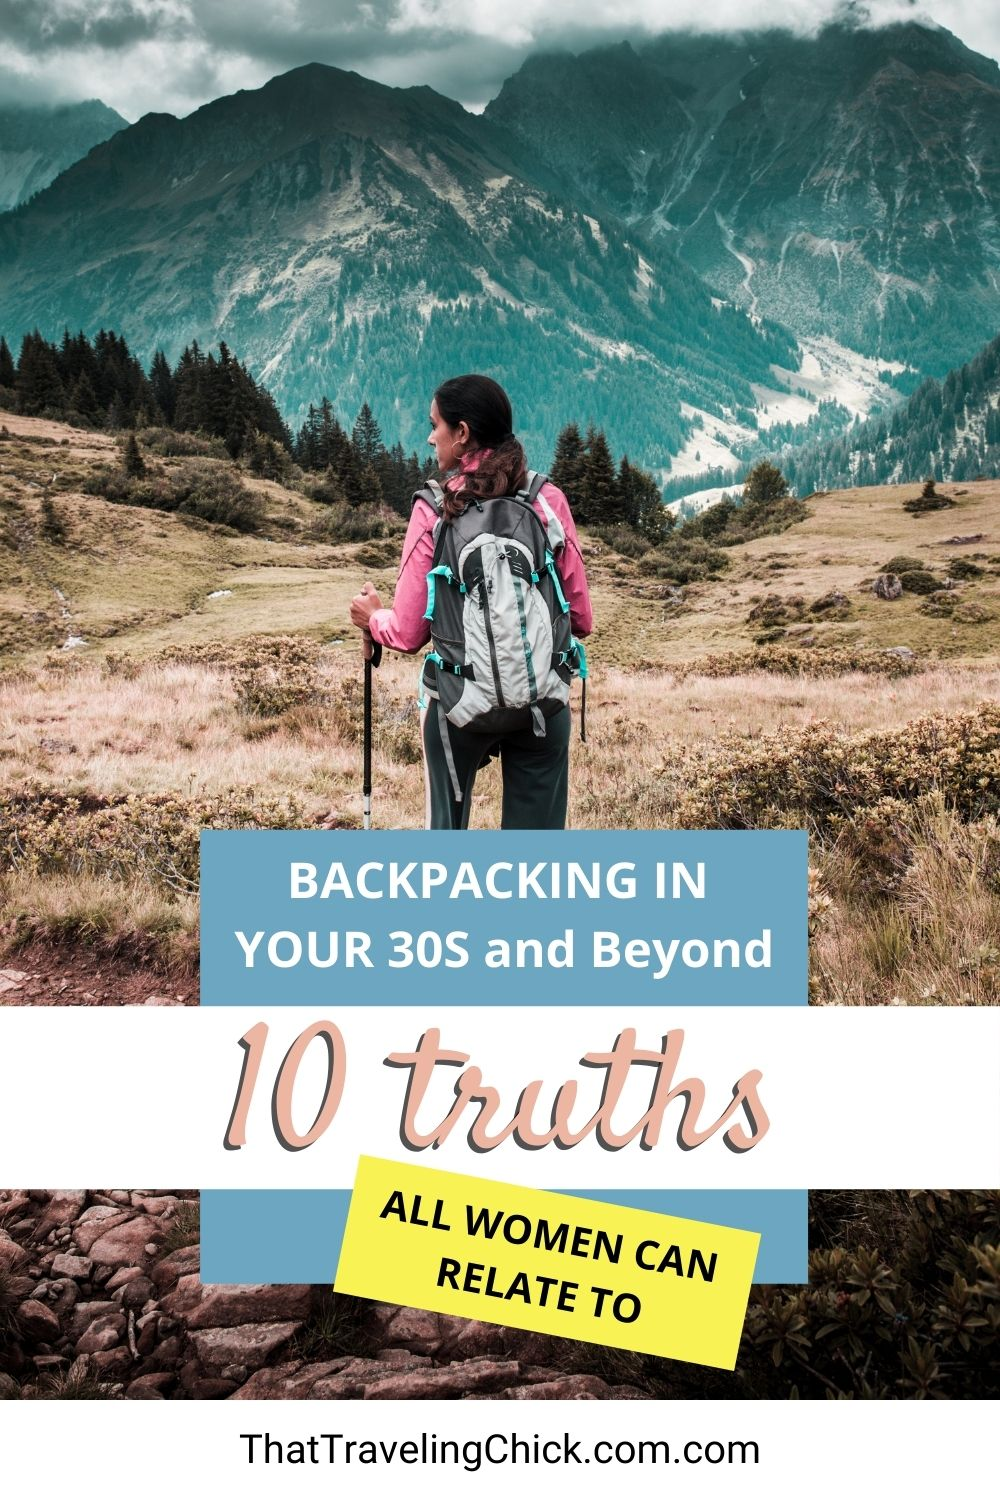 Backpacking in your 30s and beyond #backpacking #budgetbackpacking #womenwhobackpack